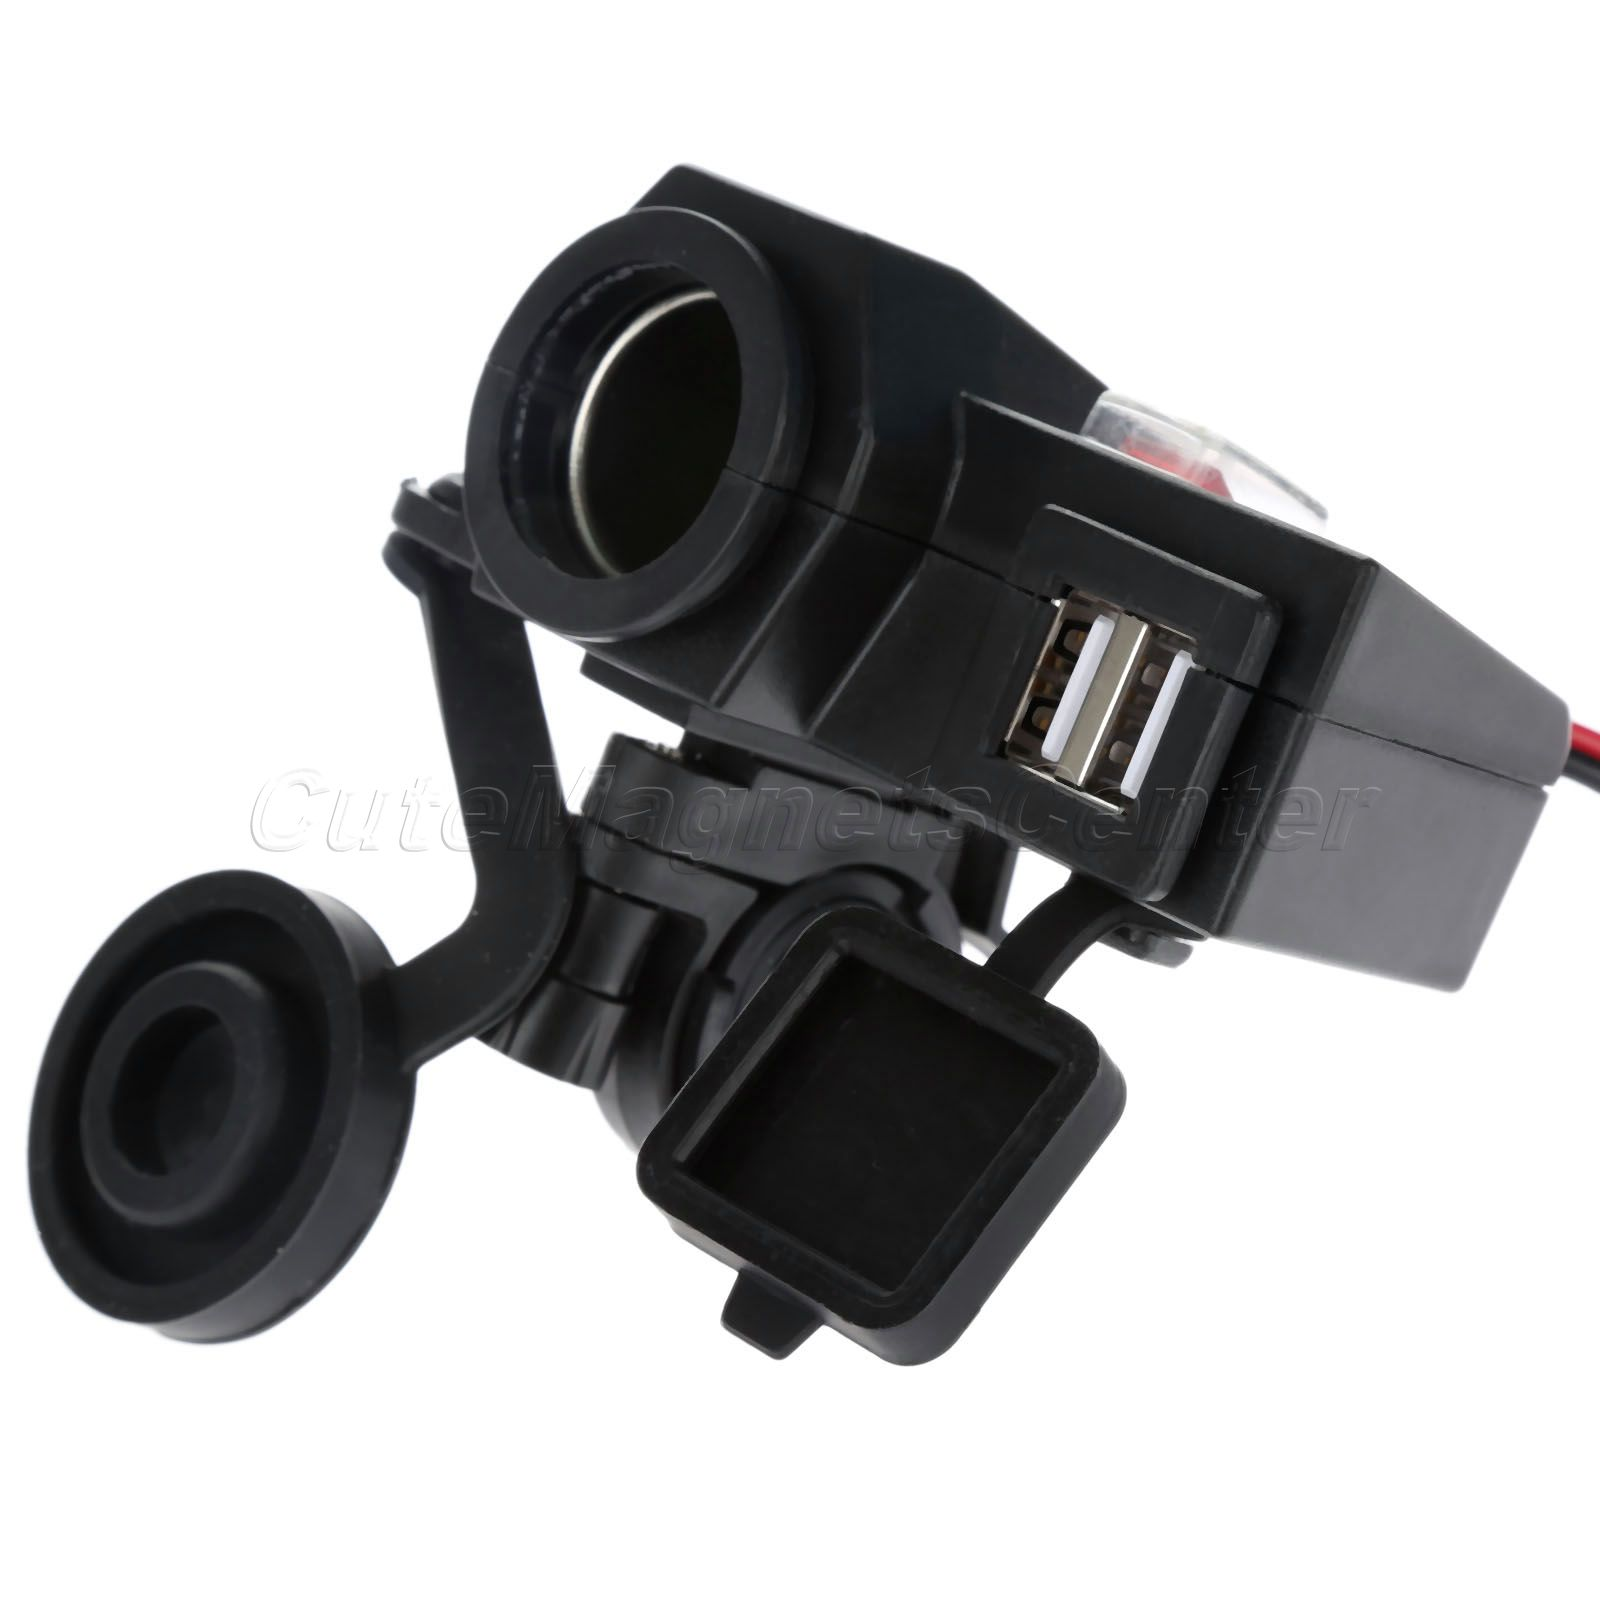 Weatherproof Motor 5V/2.1A Dual USB <font><b>Handlebar</b></font> Clamp Power Adapter Charger Universal for Motorcycle Cross Bikes Scooters Vehicles